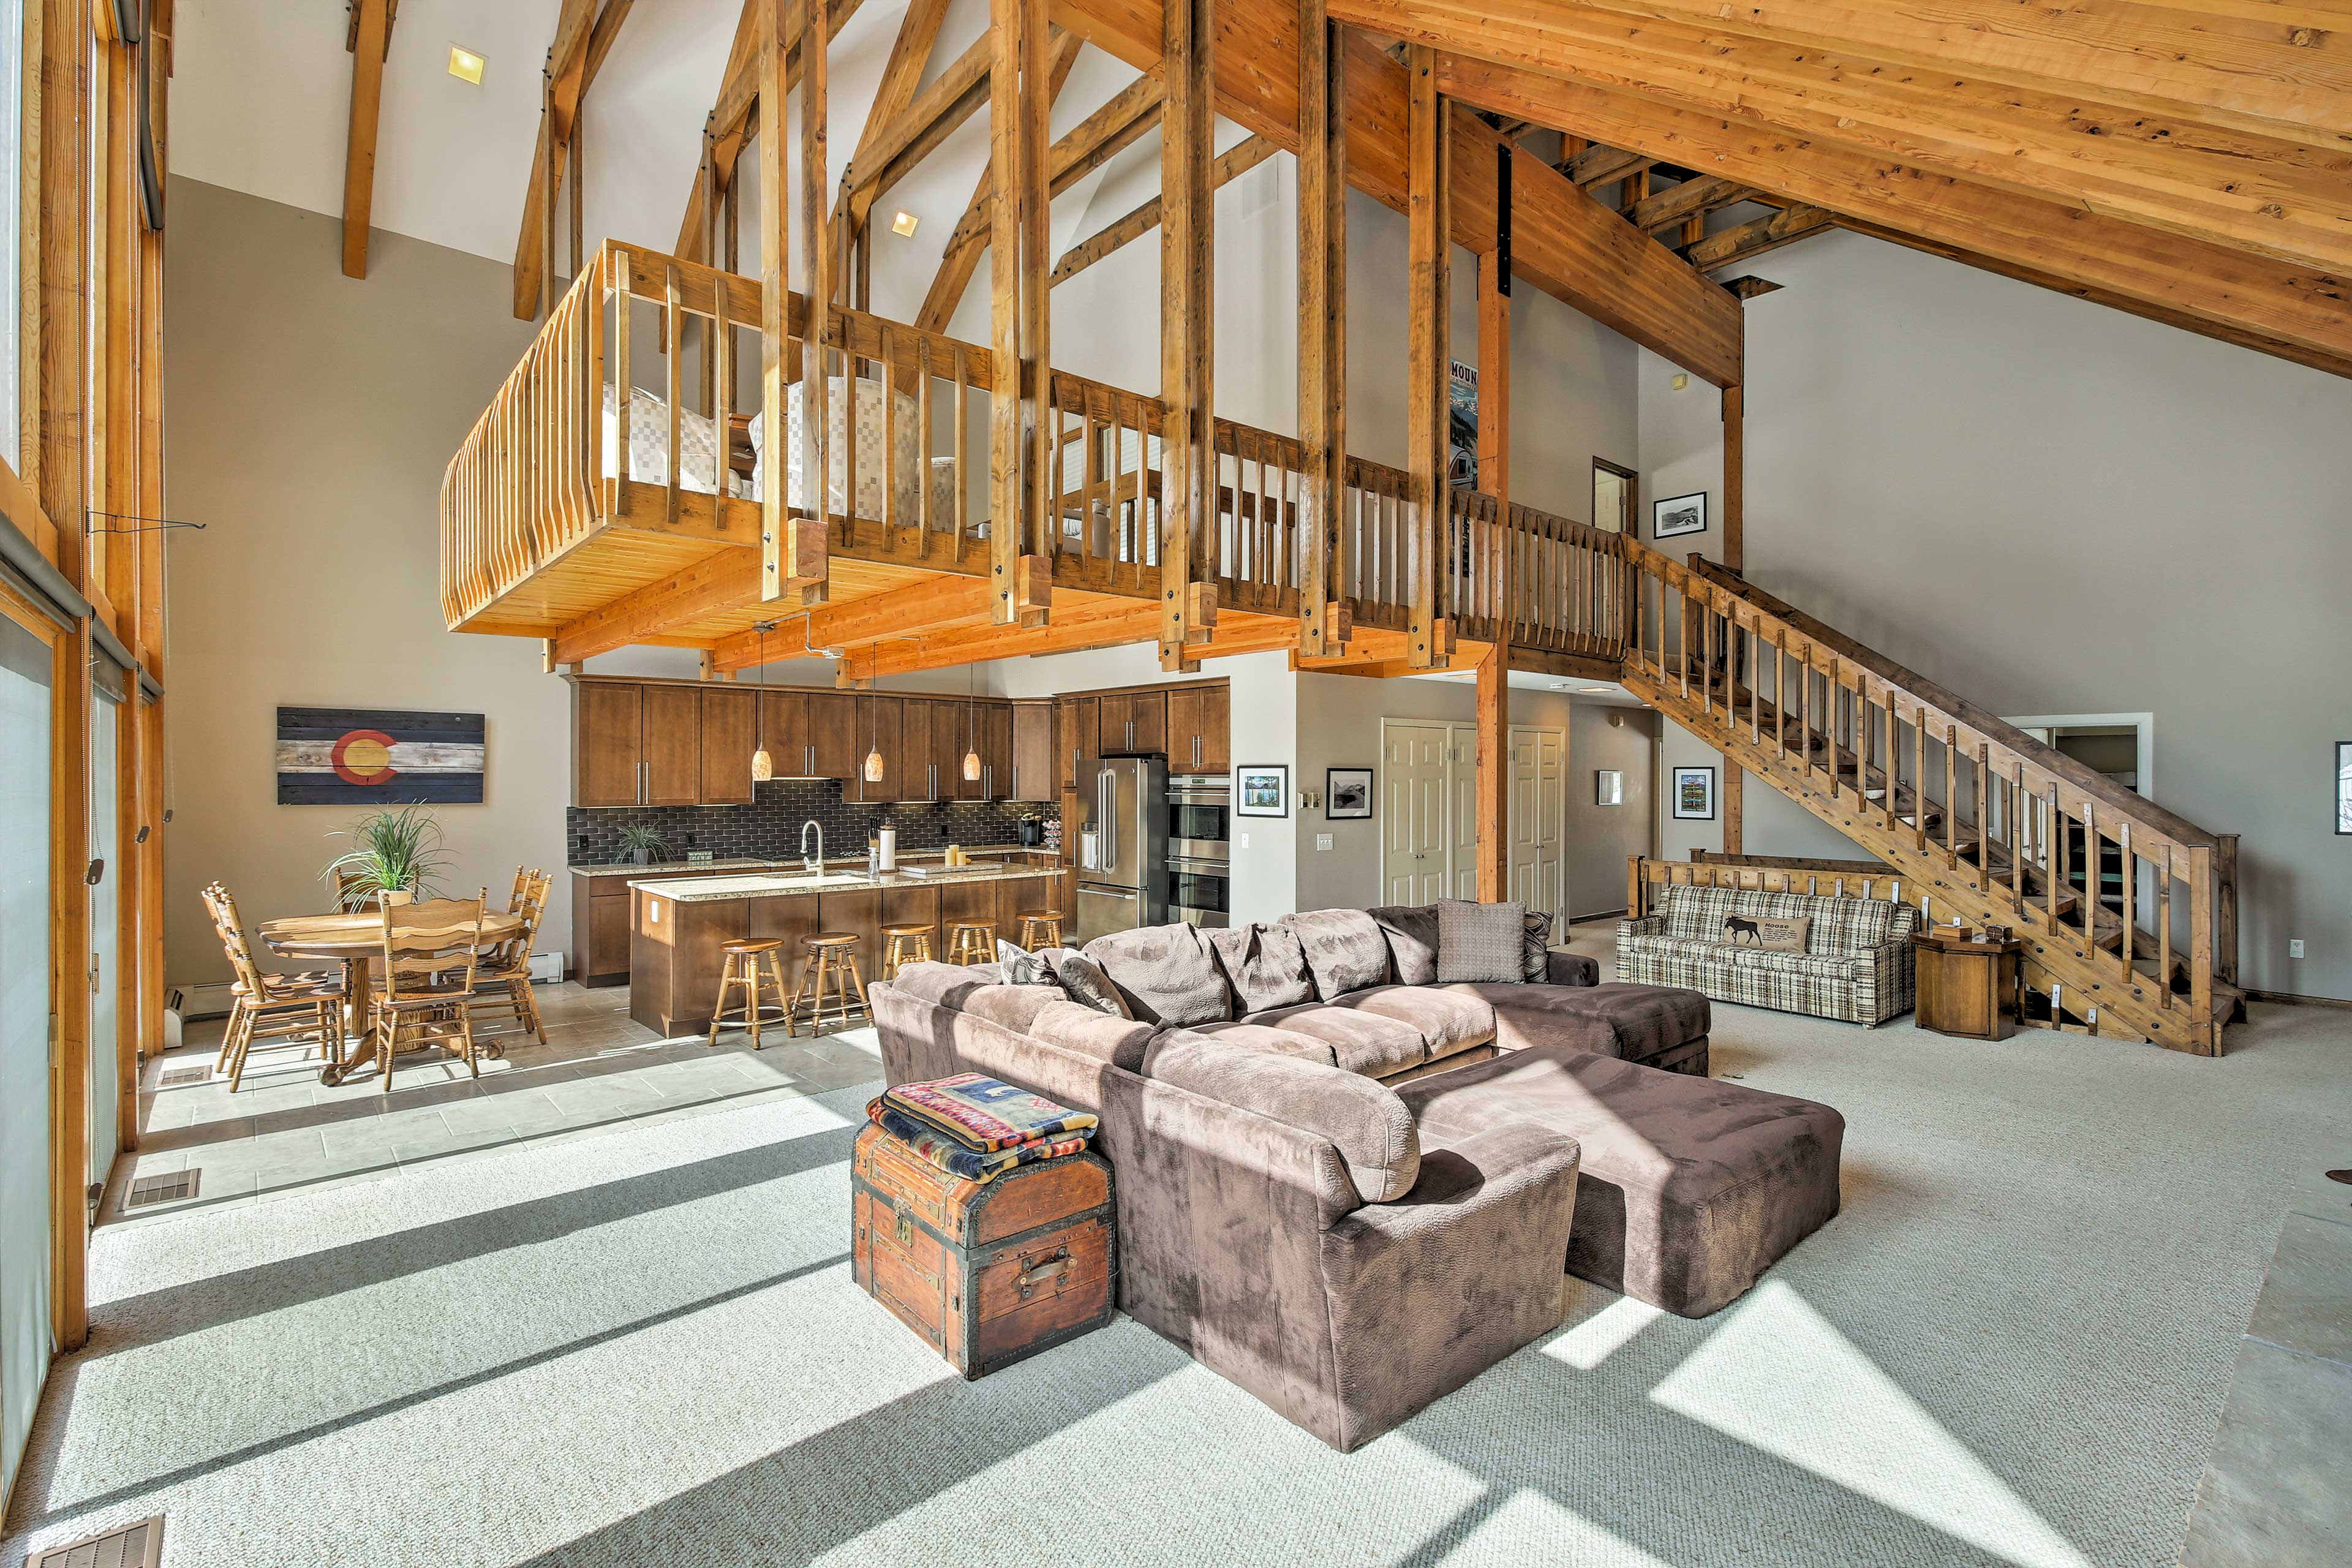 Beautiful exposed beams accentuate the soaring vaulted ceilings.